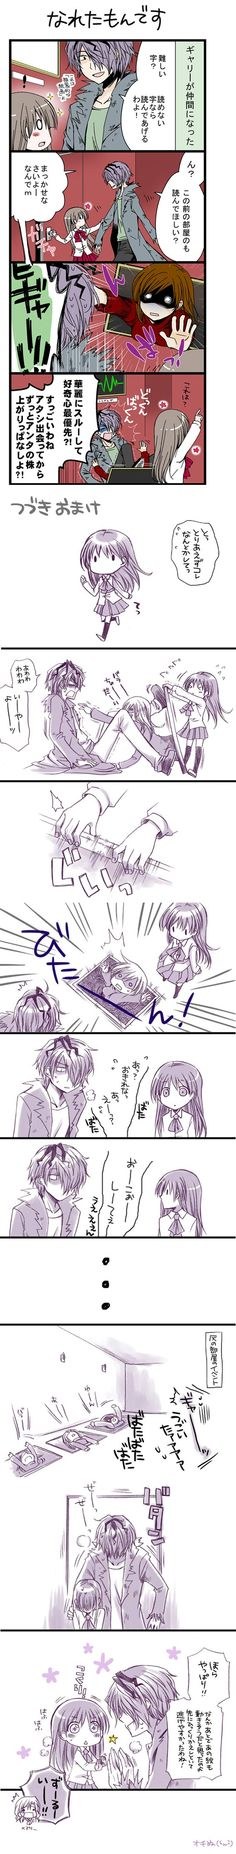 I always wondered what would have happened if they did this! I guess I'm not the only one! xD